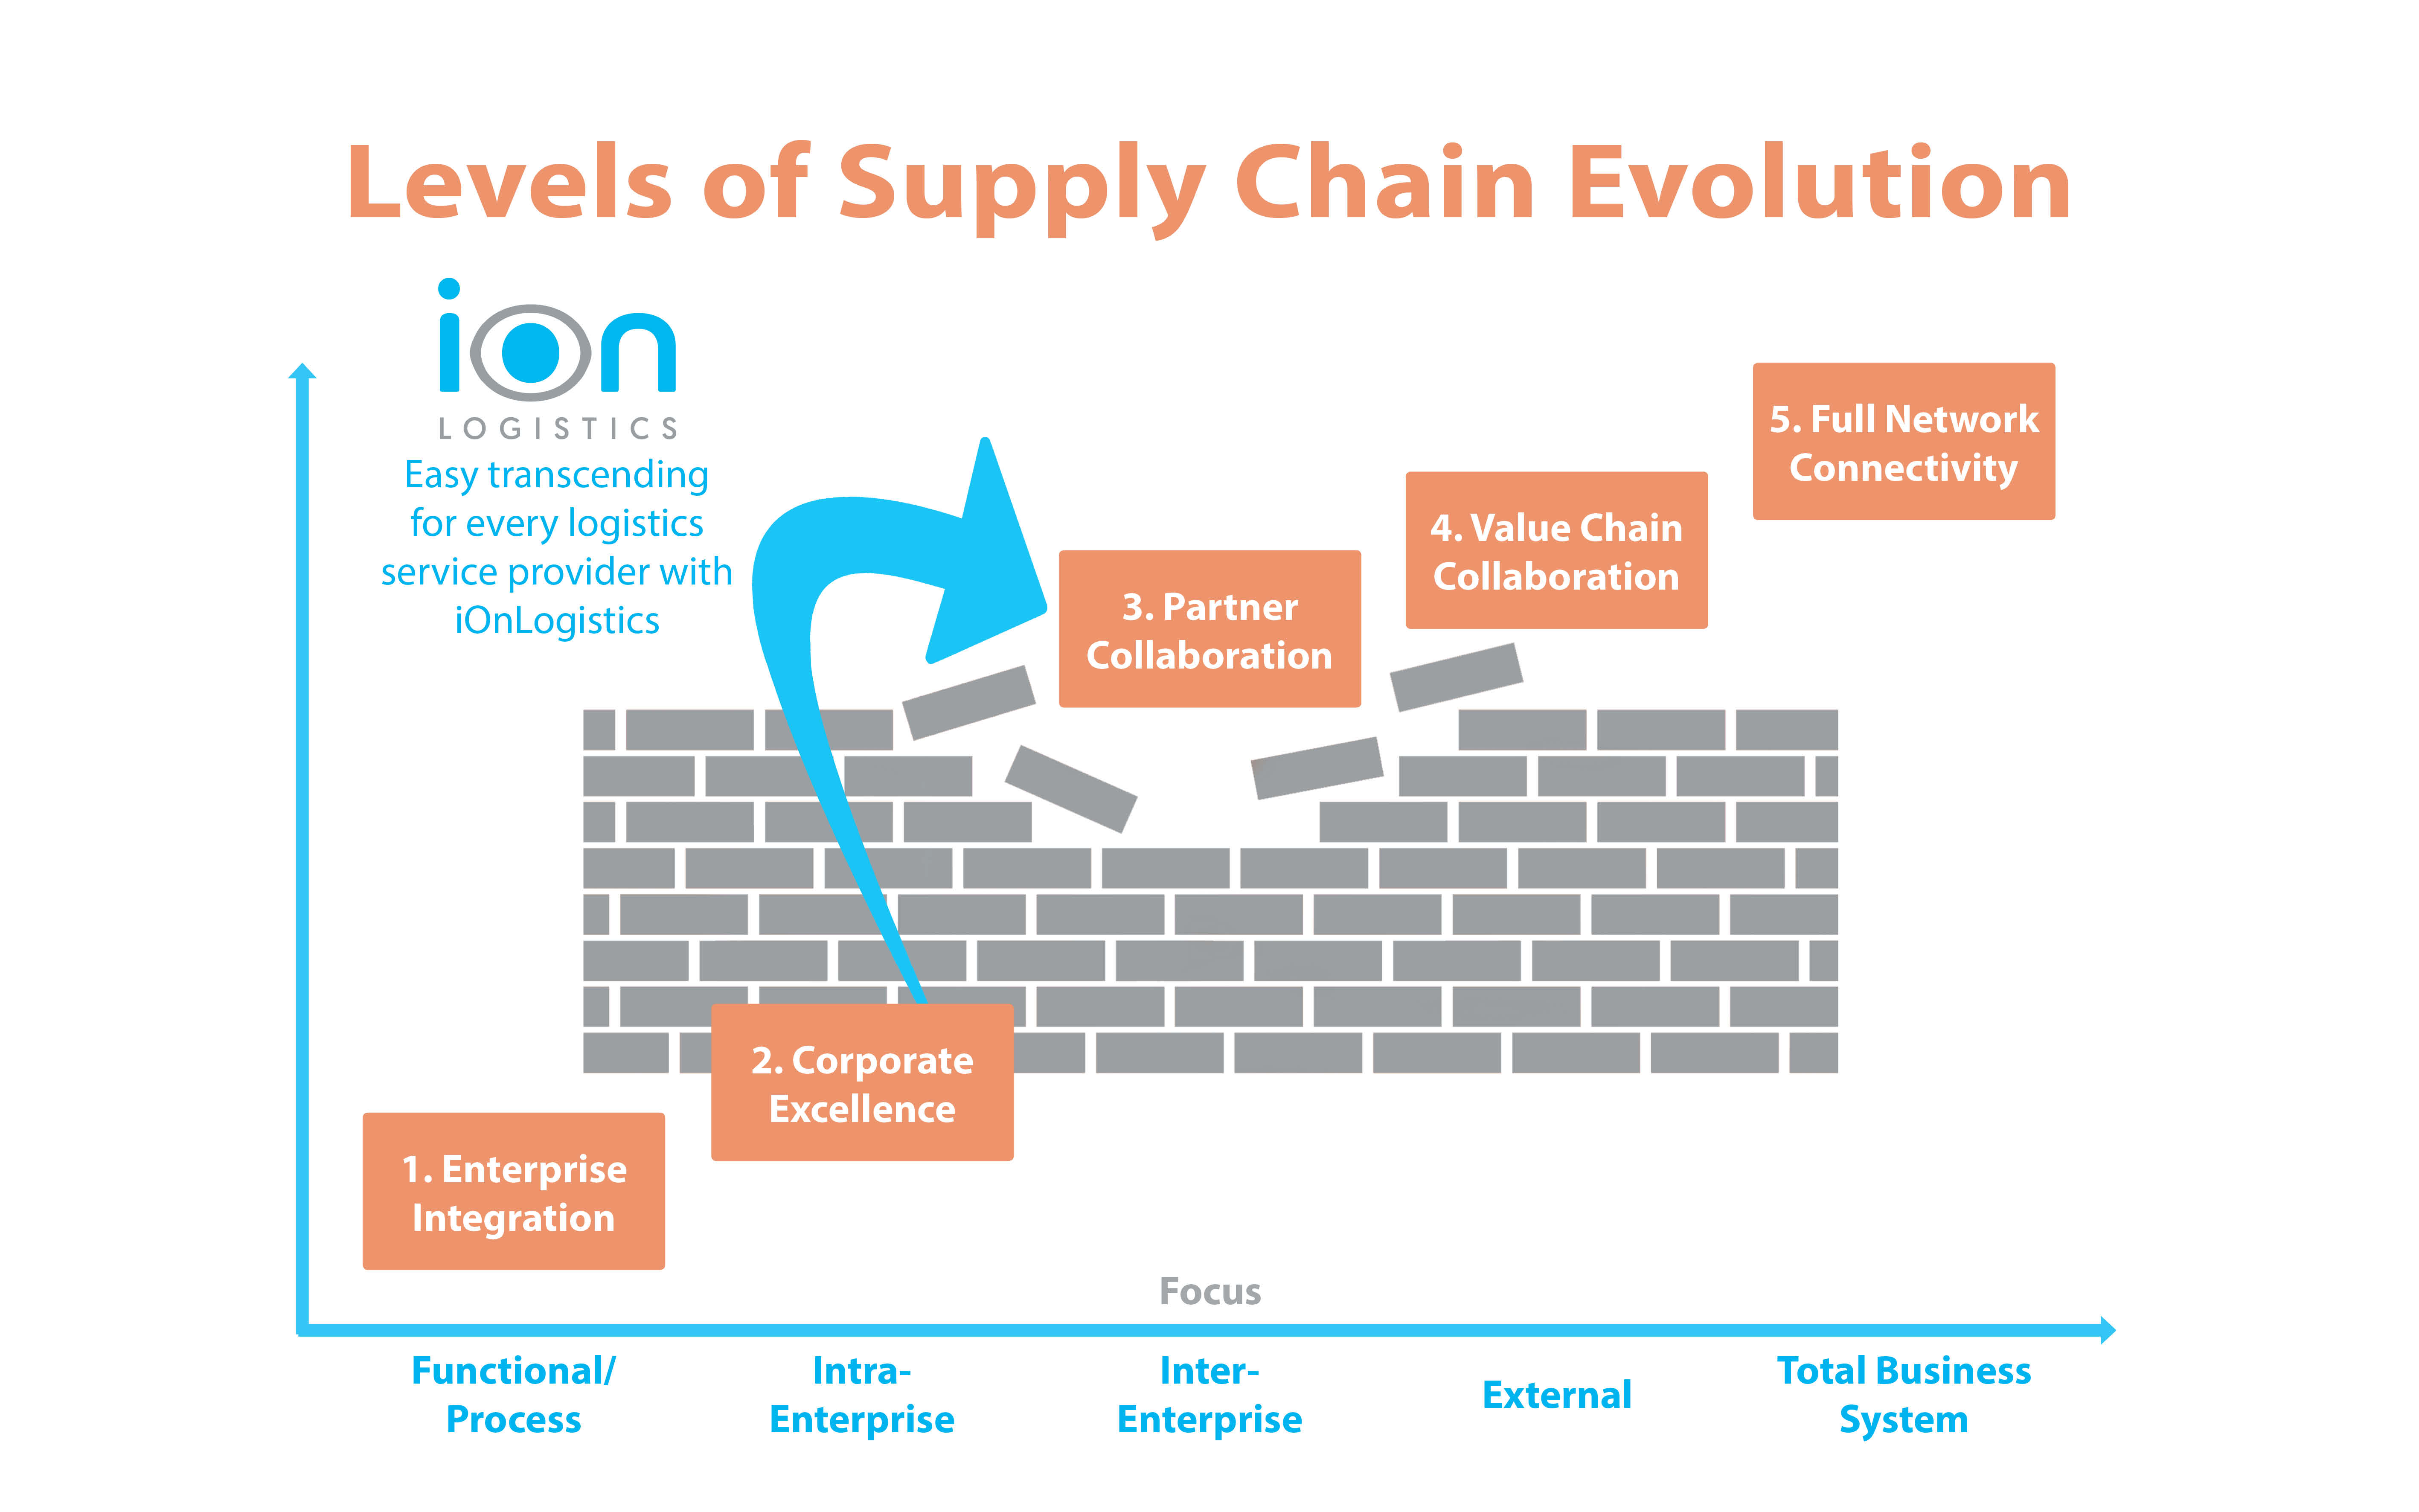 Levels of Supply Chain Evolution